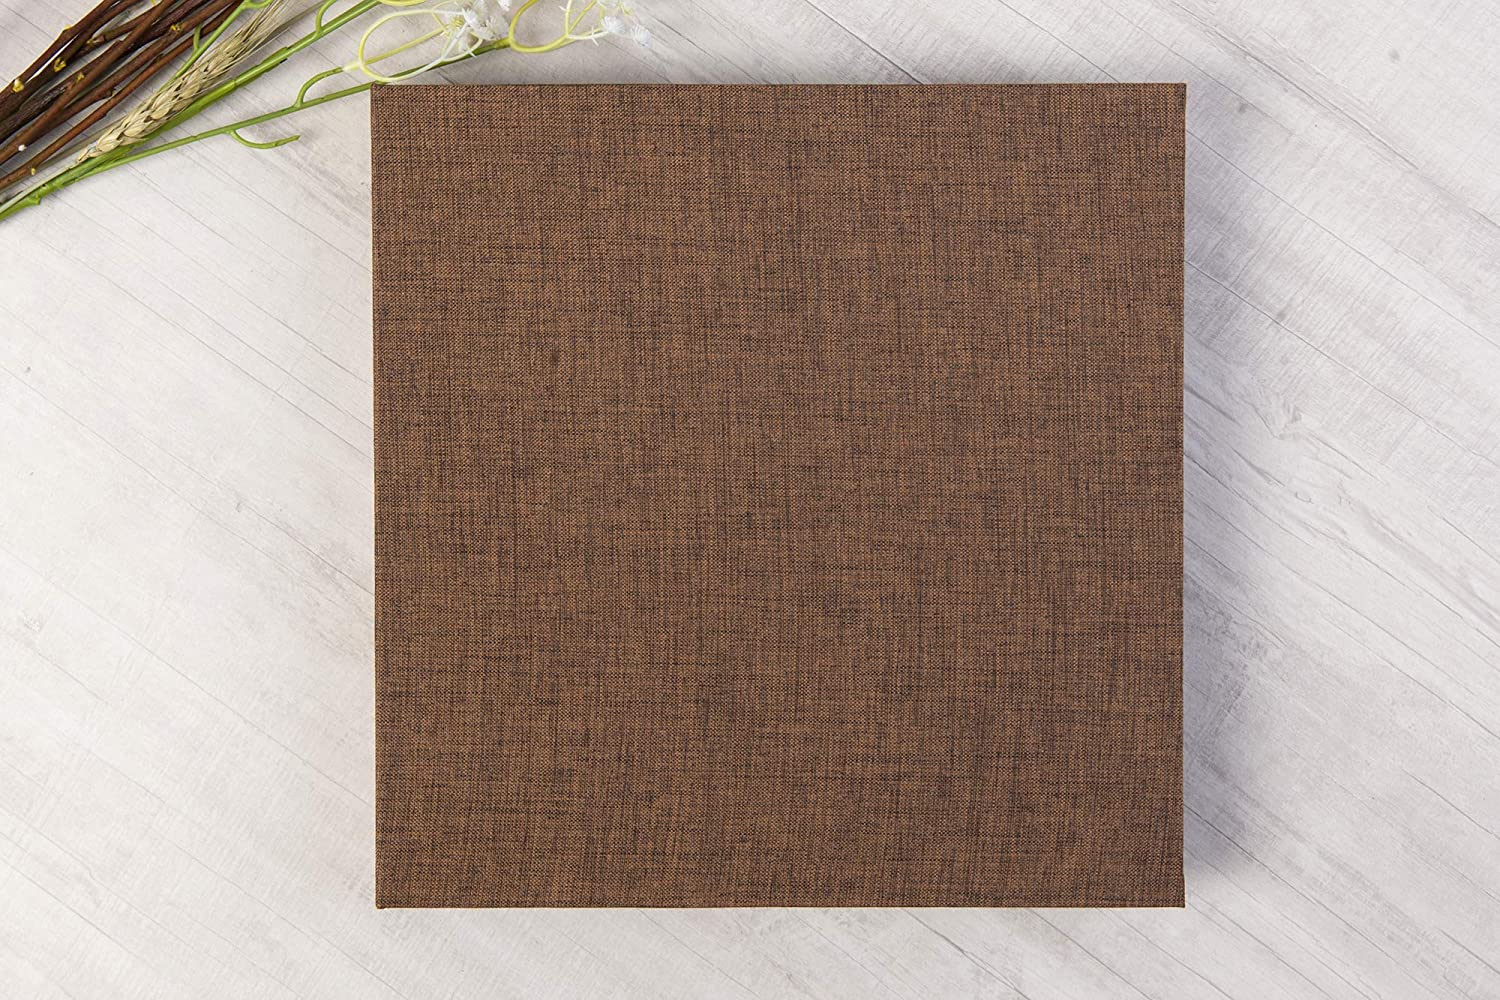 Brown, 10 x 10 Inch 10 x 10 Inch Linen Hardcover DIY Scrapbook Photo Album Kraft Blank Black Page with Plastic Protectors Wedding Family Anniversary Photo Scrapbook Album